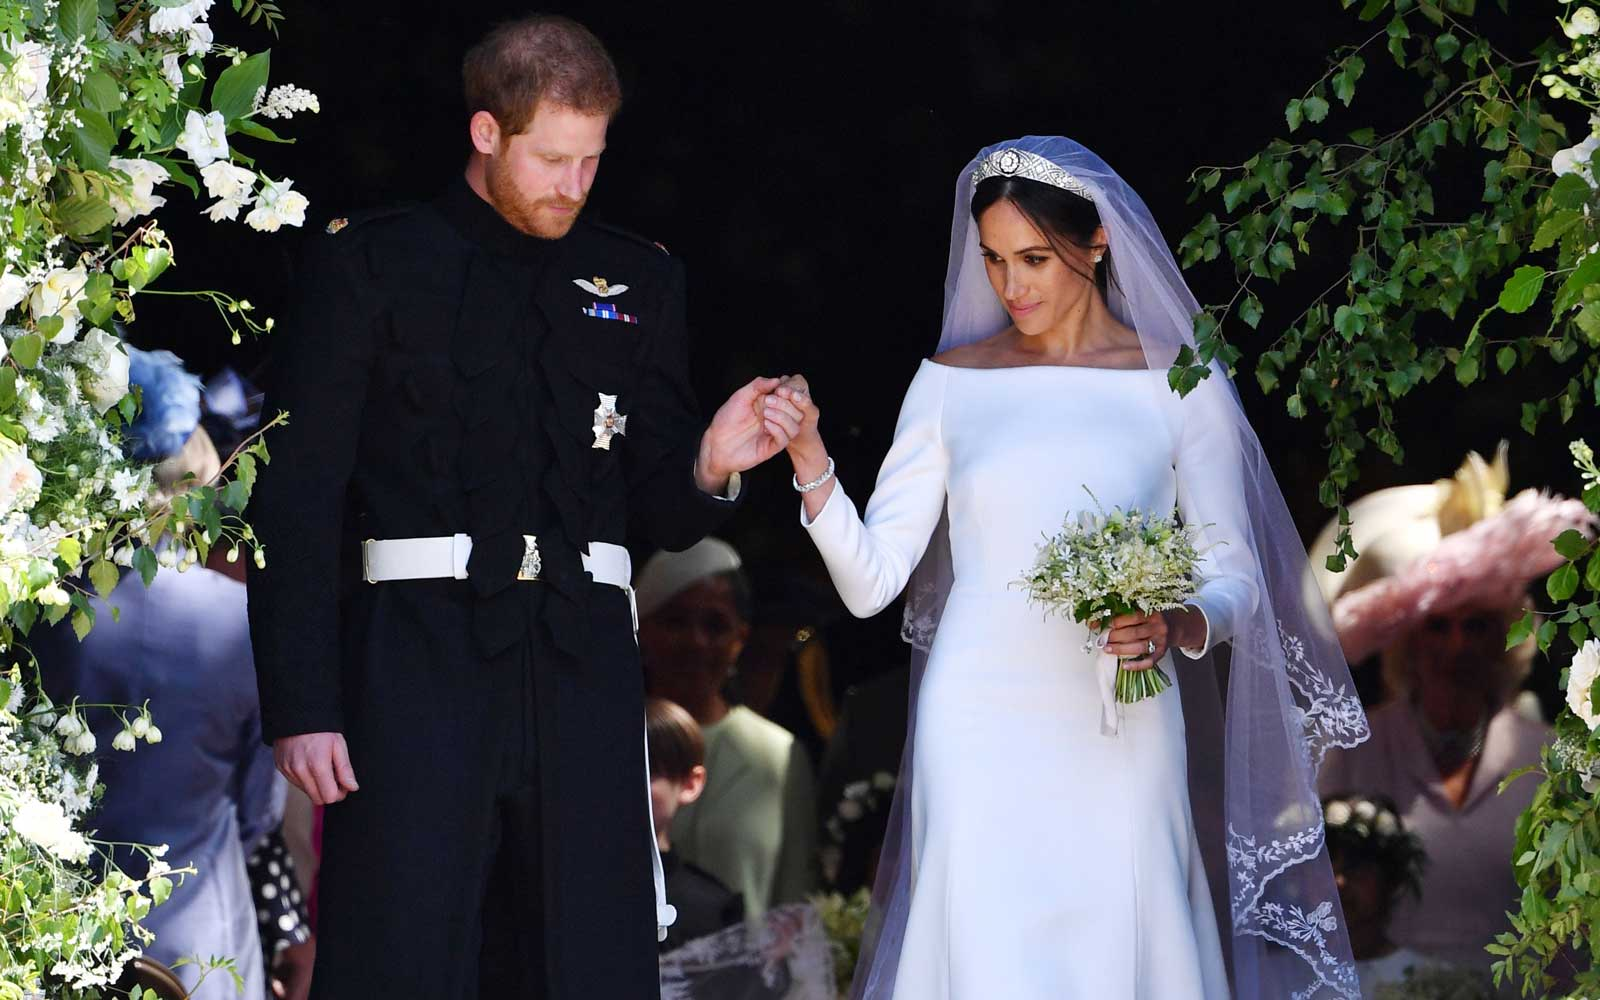 Britain's Prince Harry, Duke of Sussex and his wife Meghan, Duchess of Sussex emerge from the West Door of St George's Chapel, Windsor Castle, in Windsor, on May 19, 2018